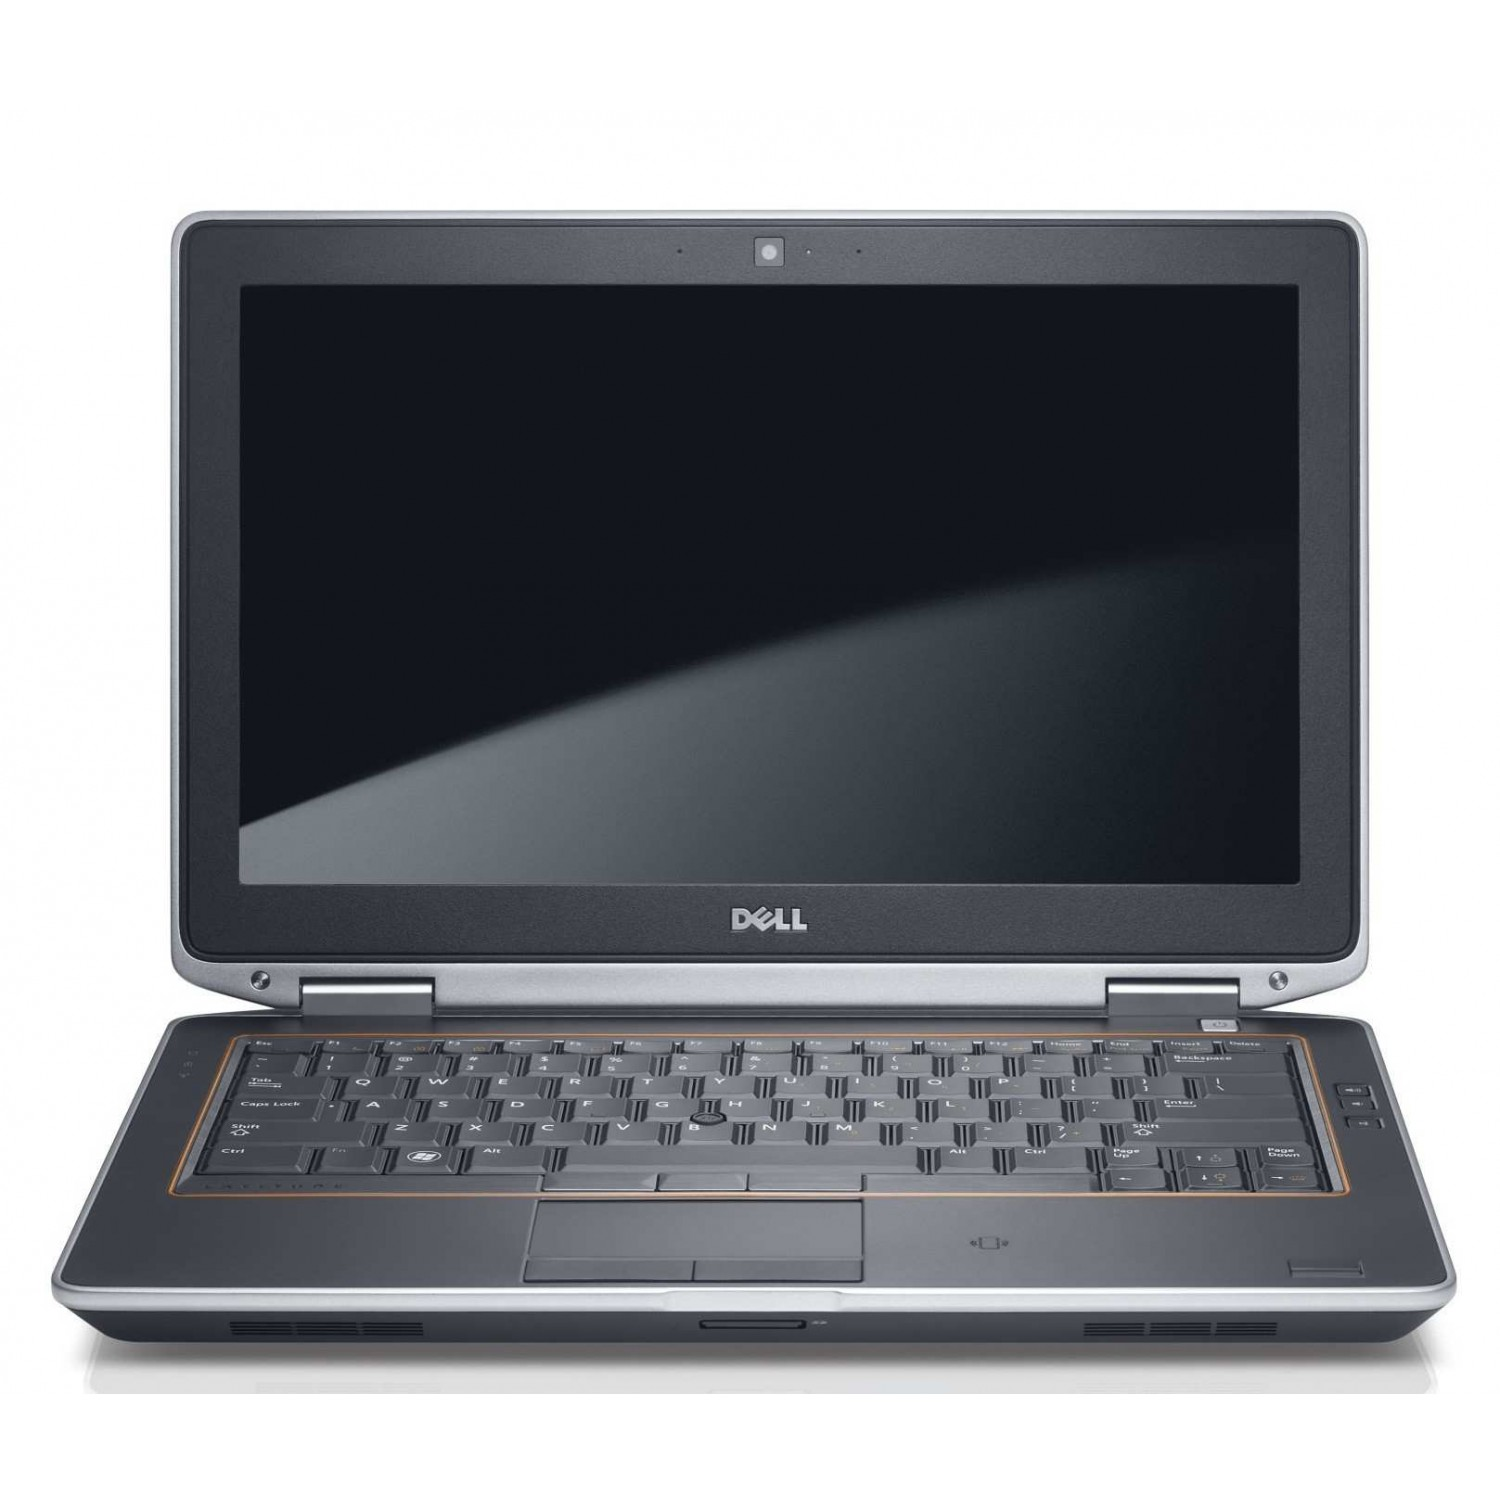 "PORTÁTIL LATITUDE E6320 |i5-2520M / 12.1"" / 4GB / 320GB HDD 